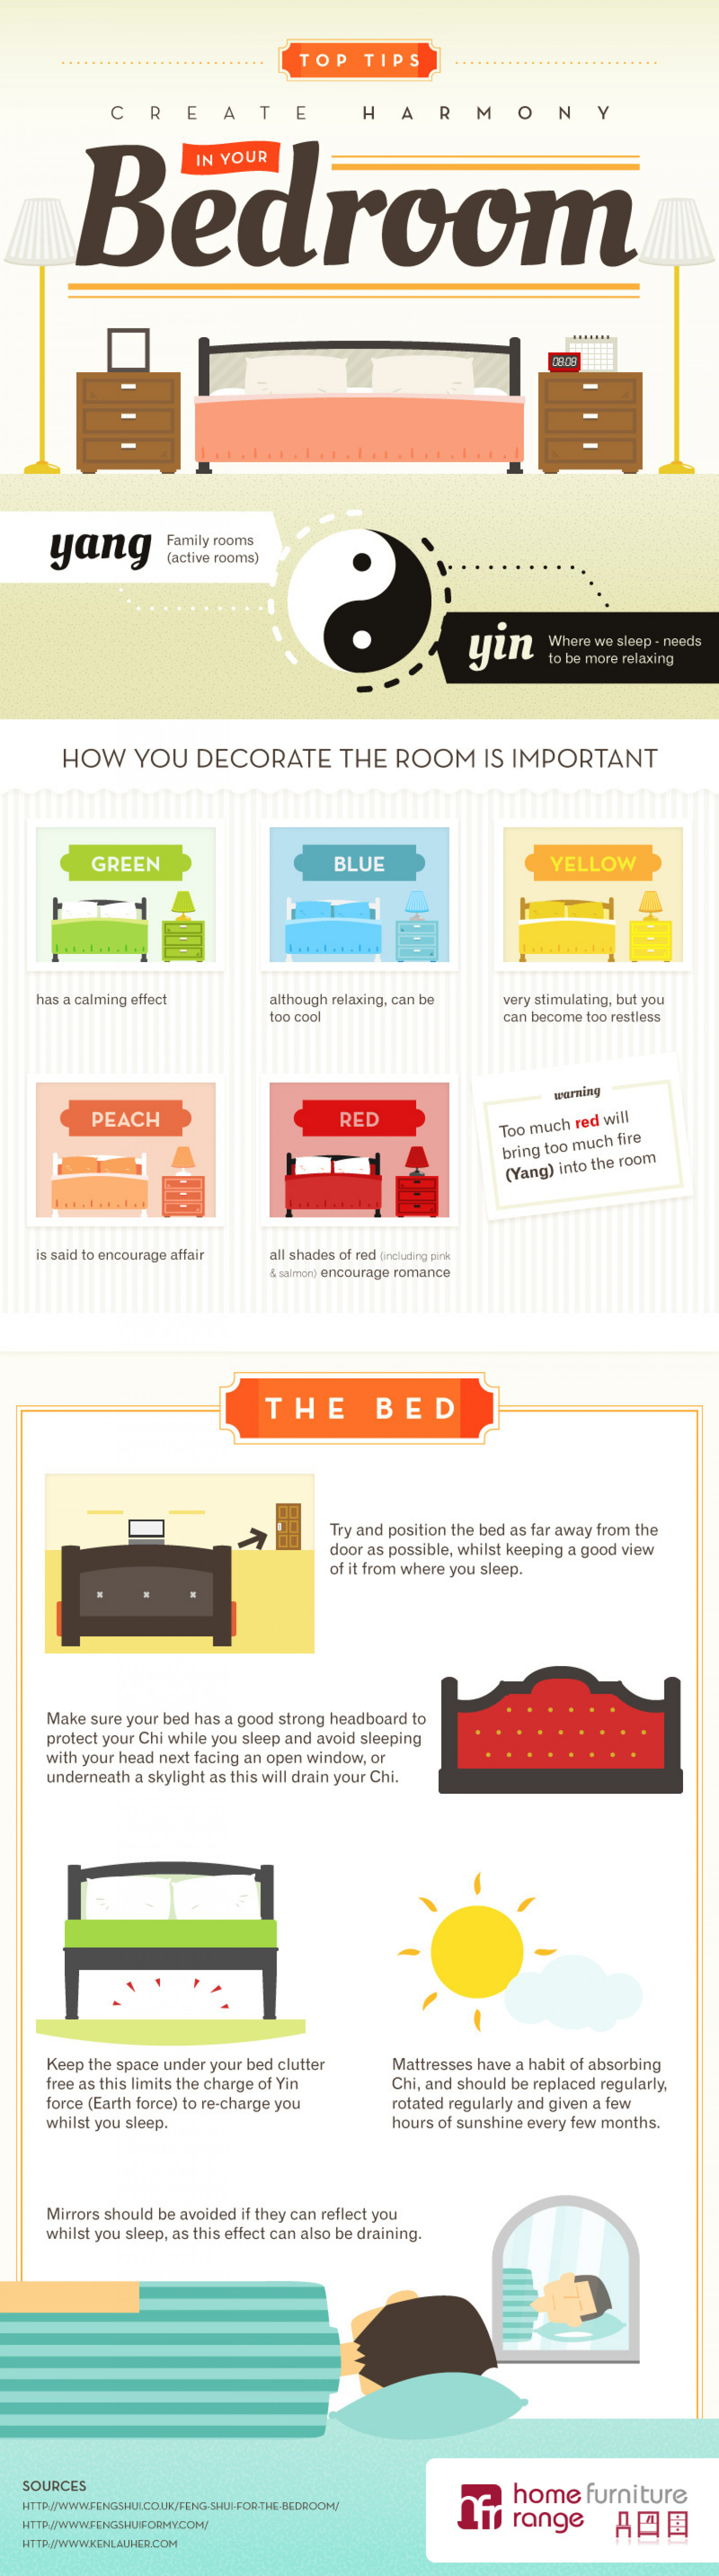 How To Feng Shui Your Bedroom | Visual.ly Feng Shui For Bedroom on inspiration for bedroom, security for bedroom, sports for bedroom, fung shui bedroom, art for bedroom, zen for bedroom, design for bedroom, diy for bedroom, renovation for bedroom, beauty for bedroom, entertainment for bedroom, green and white bedroom, painting for bedroom, vastu for bedroom, flooring for bedroom, food for bedroom, fashion for bedroom, furniture for bedroom, crafts for bedroom, flowers for bedroom,